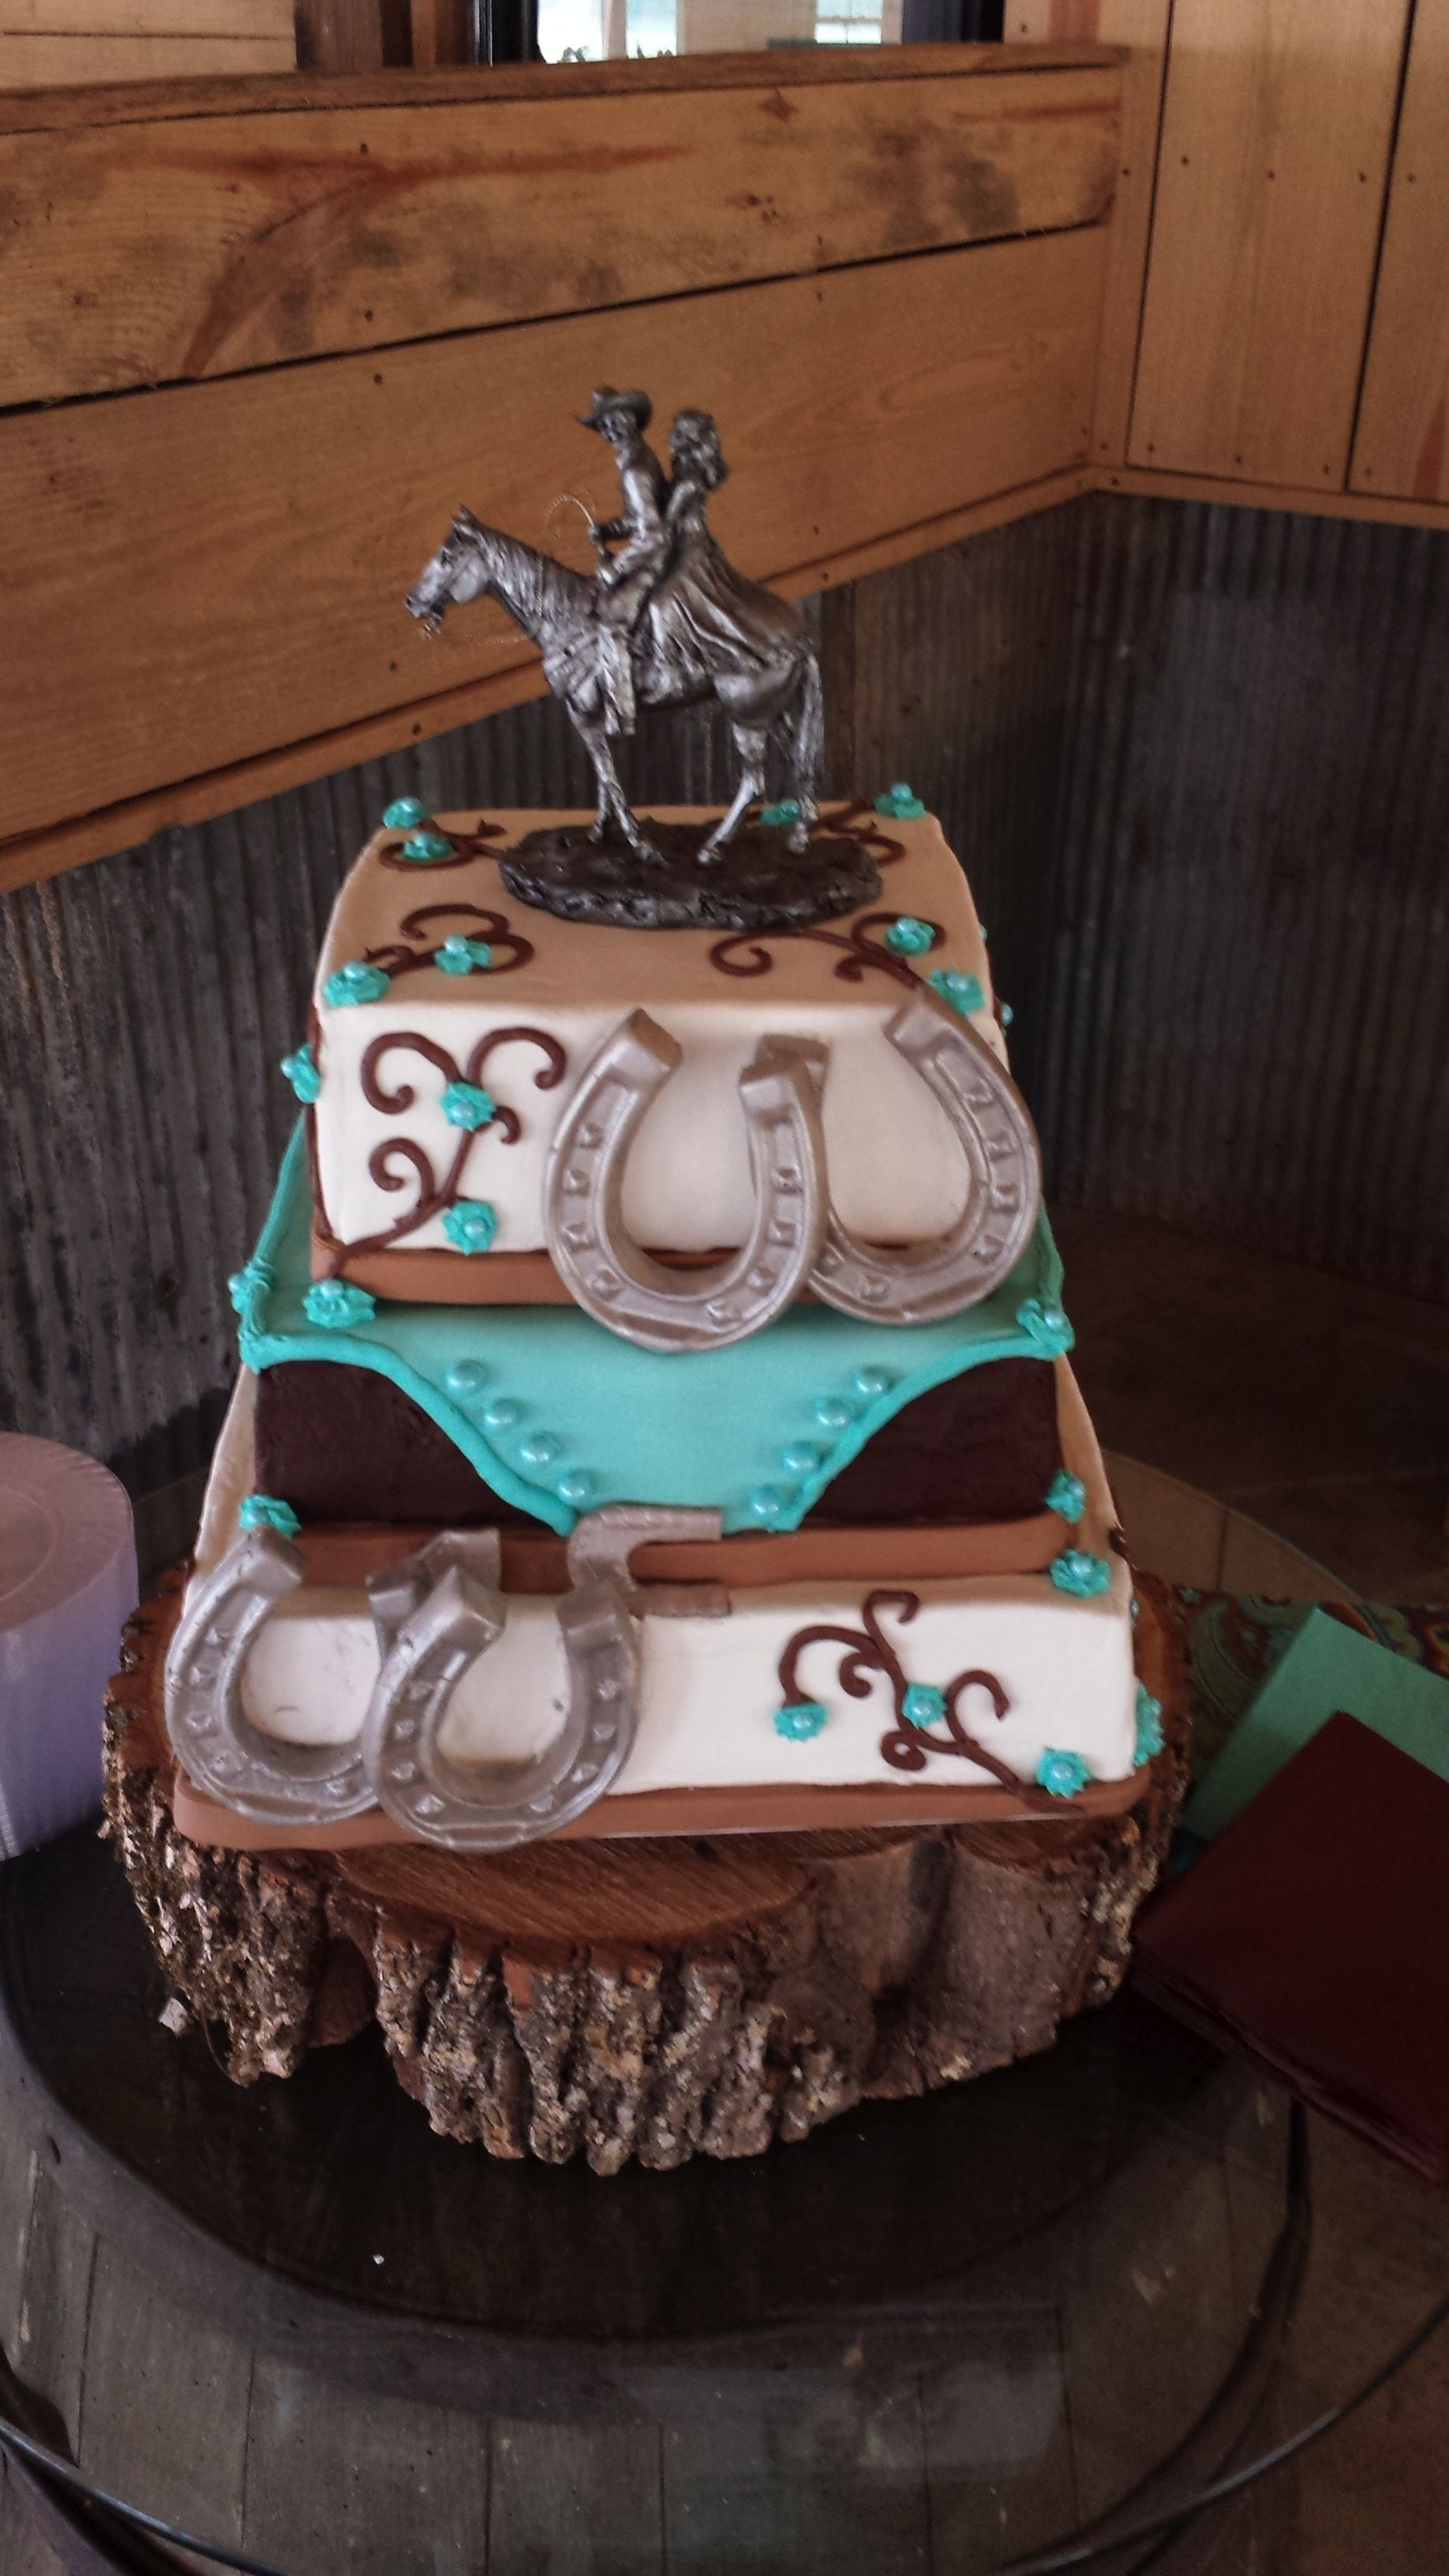 Pin By Jessica Jarvis On Cakes Western Wedding Cakes Country Wedding Cakes Western Cakes